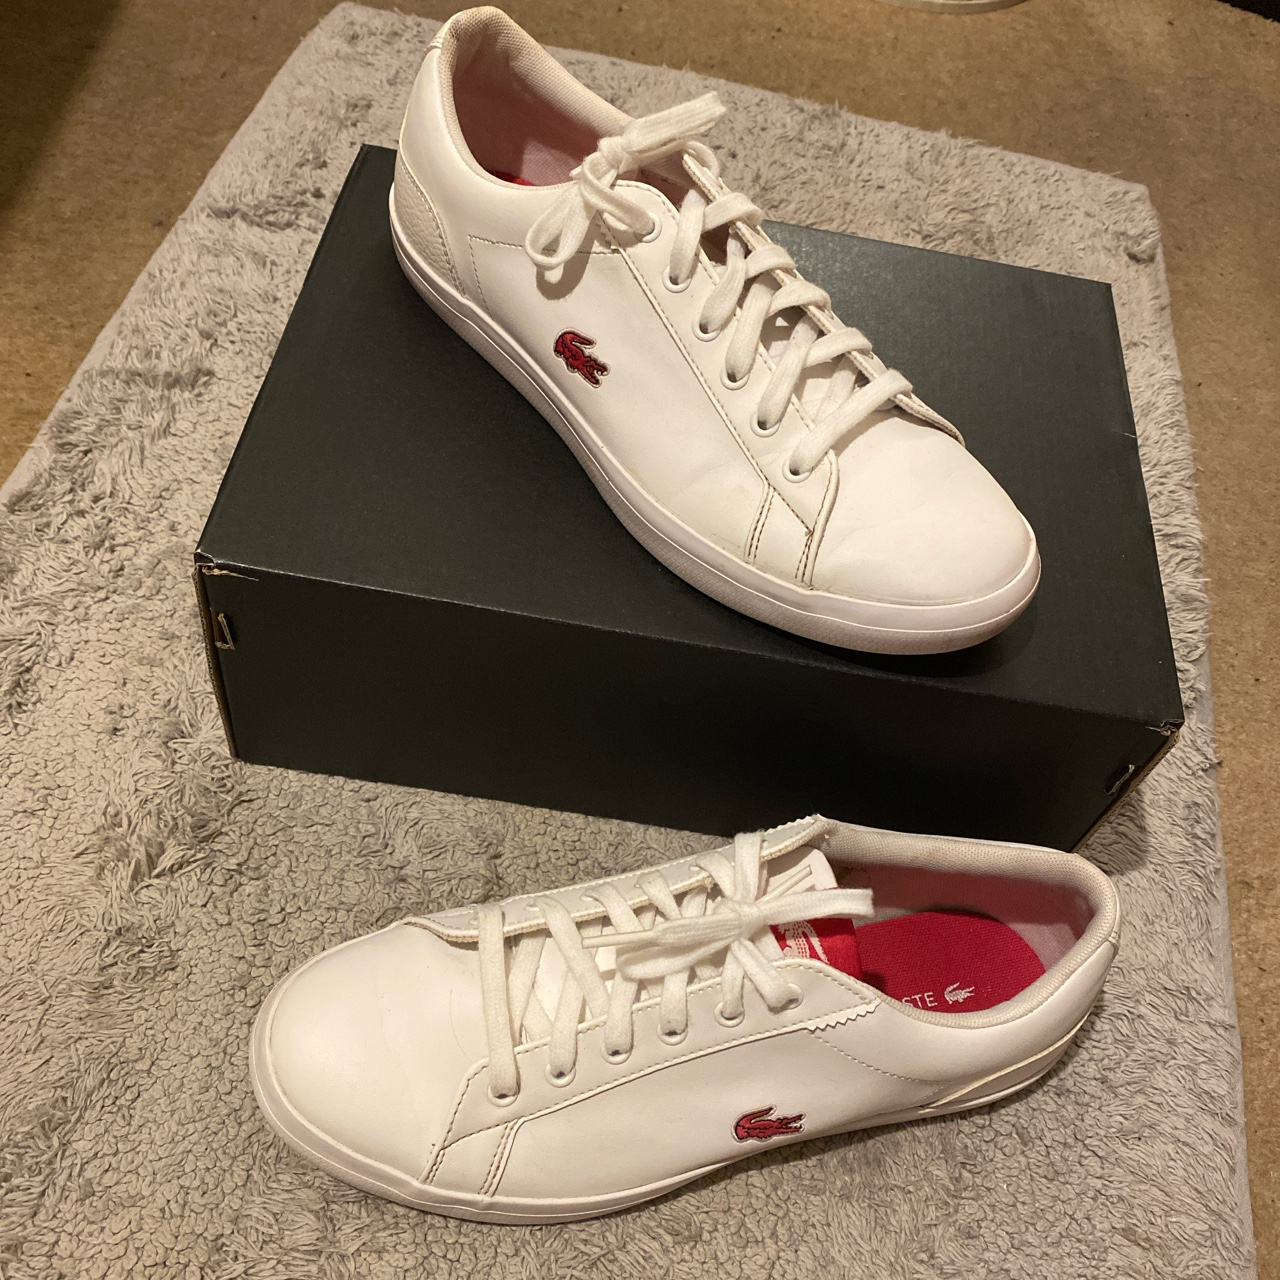 White lacoste trainers with pink detail